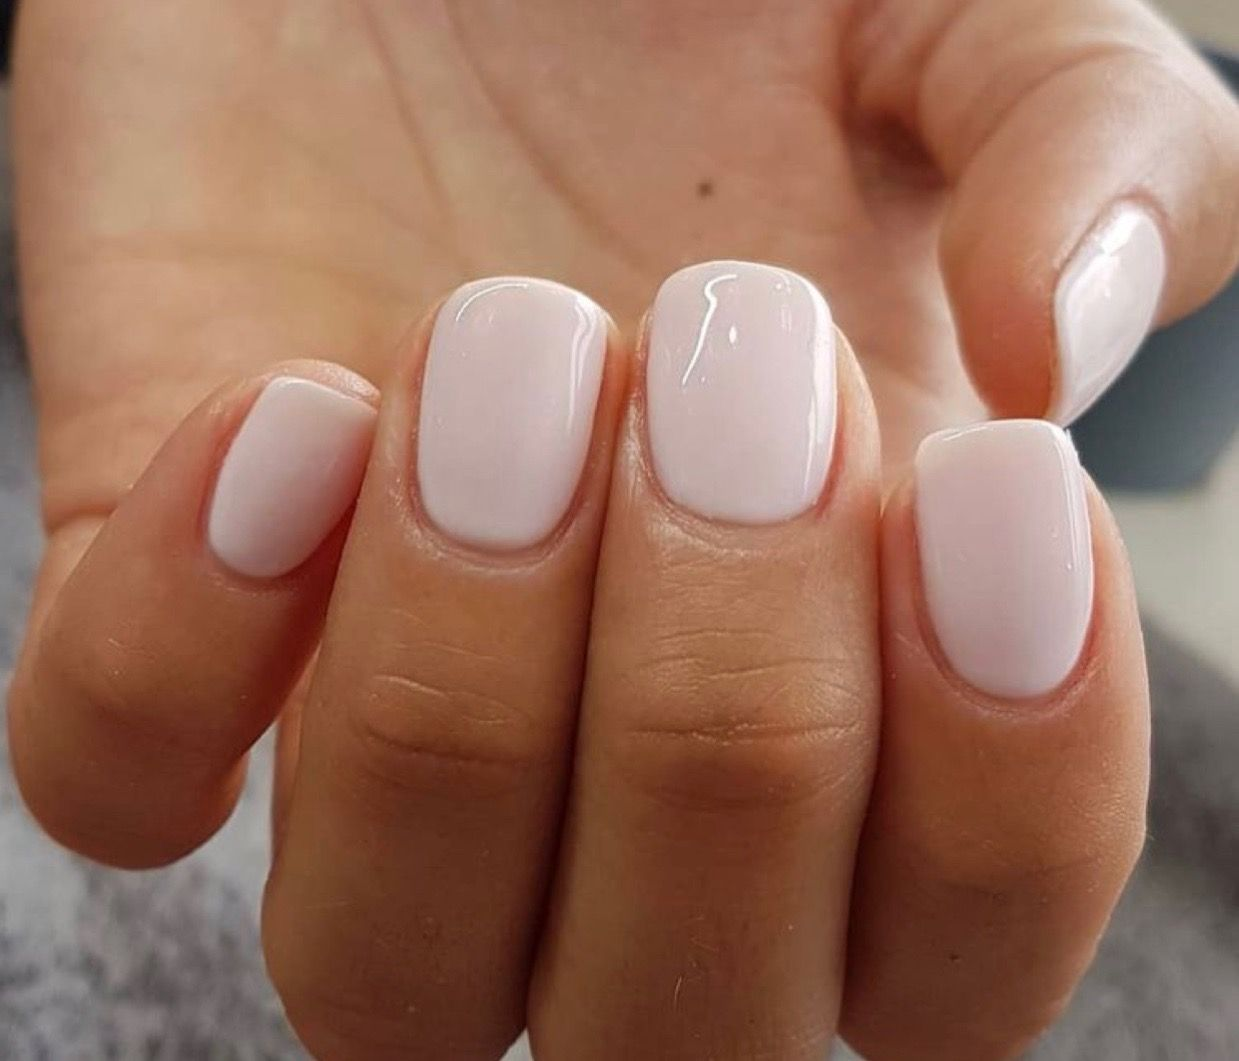 Short Beautiful Square Shaped Natural Nails With Opi S Let S Be Friends In Gel Polish This Opaque Shade Is The Most P Dipped Nails Pretty Nail Colors Nails